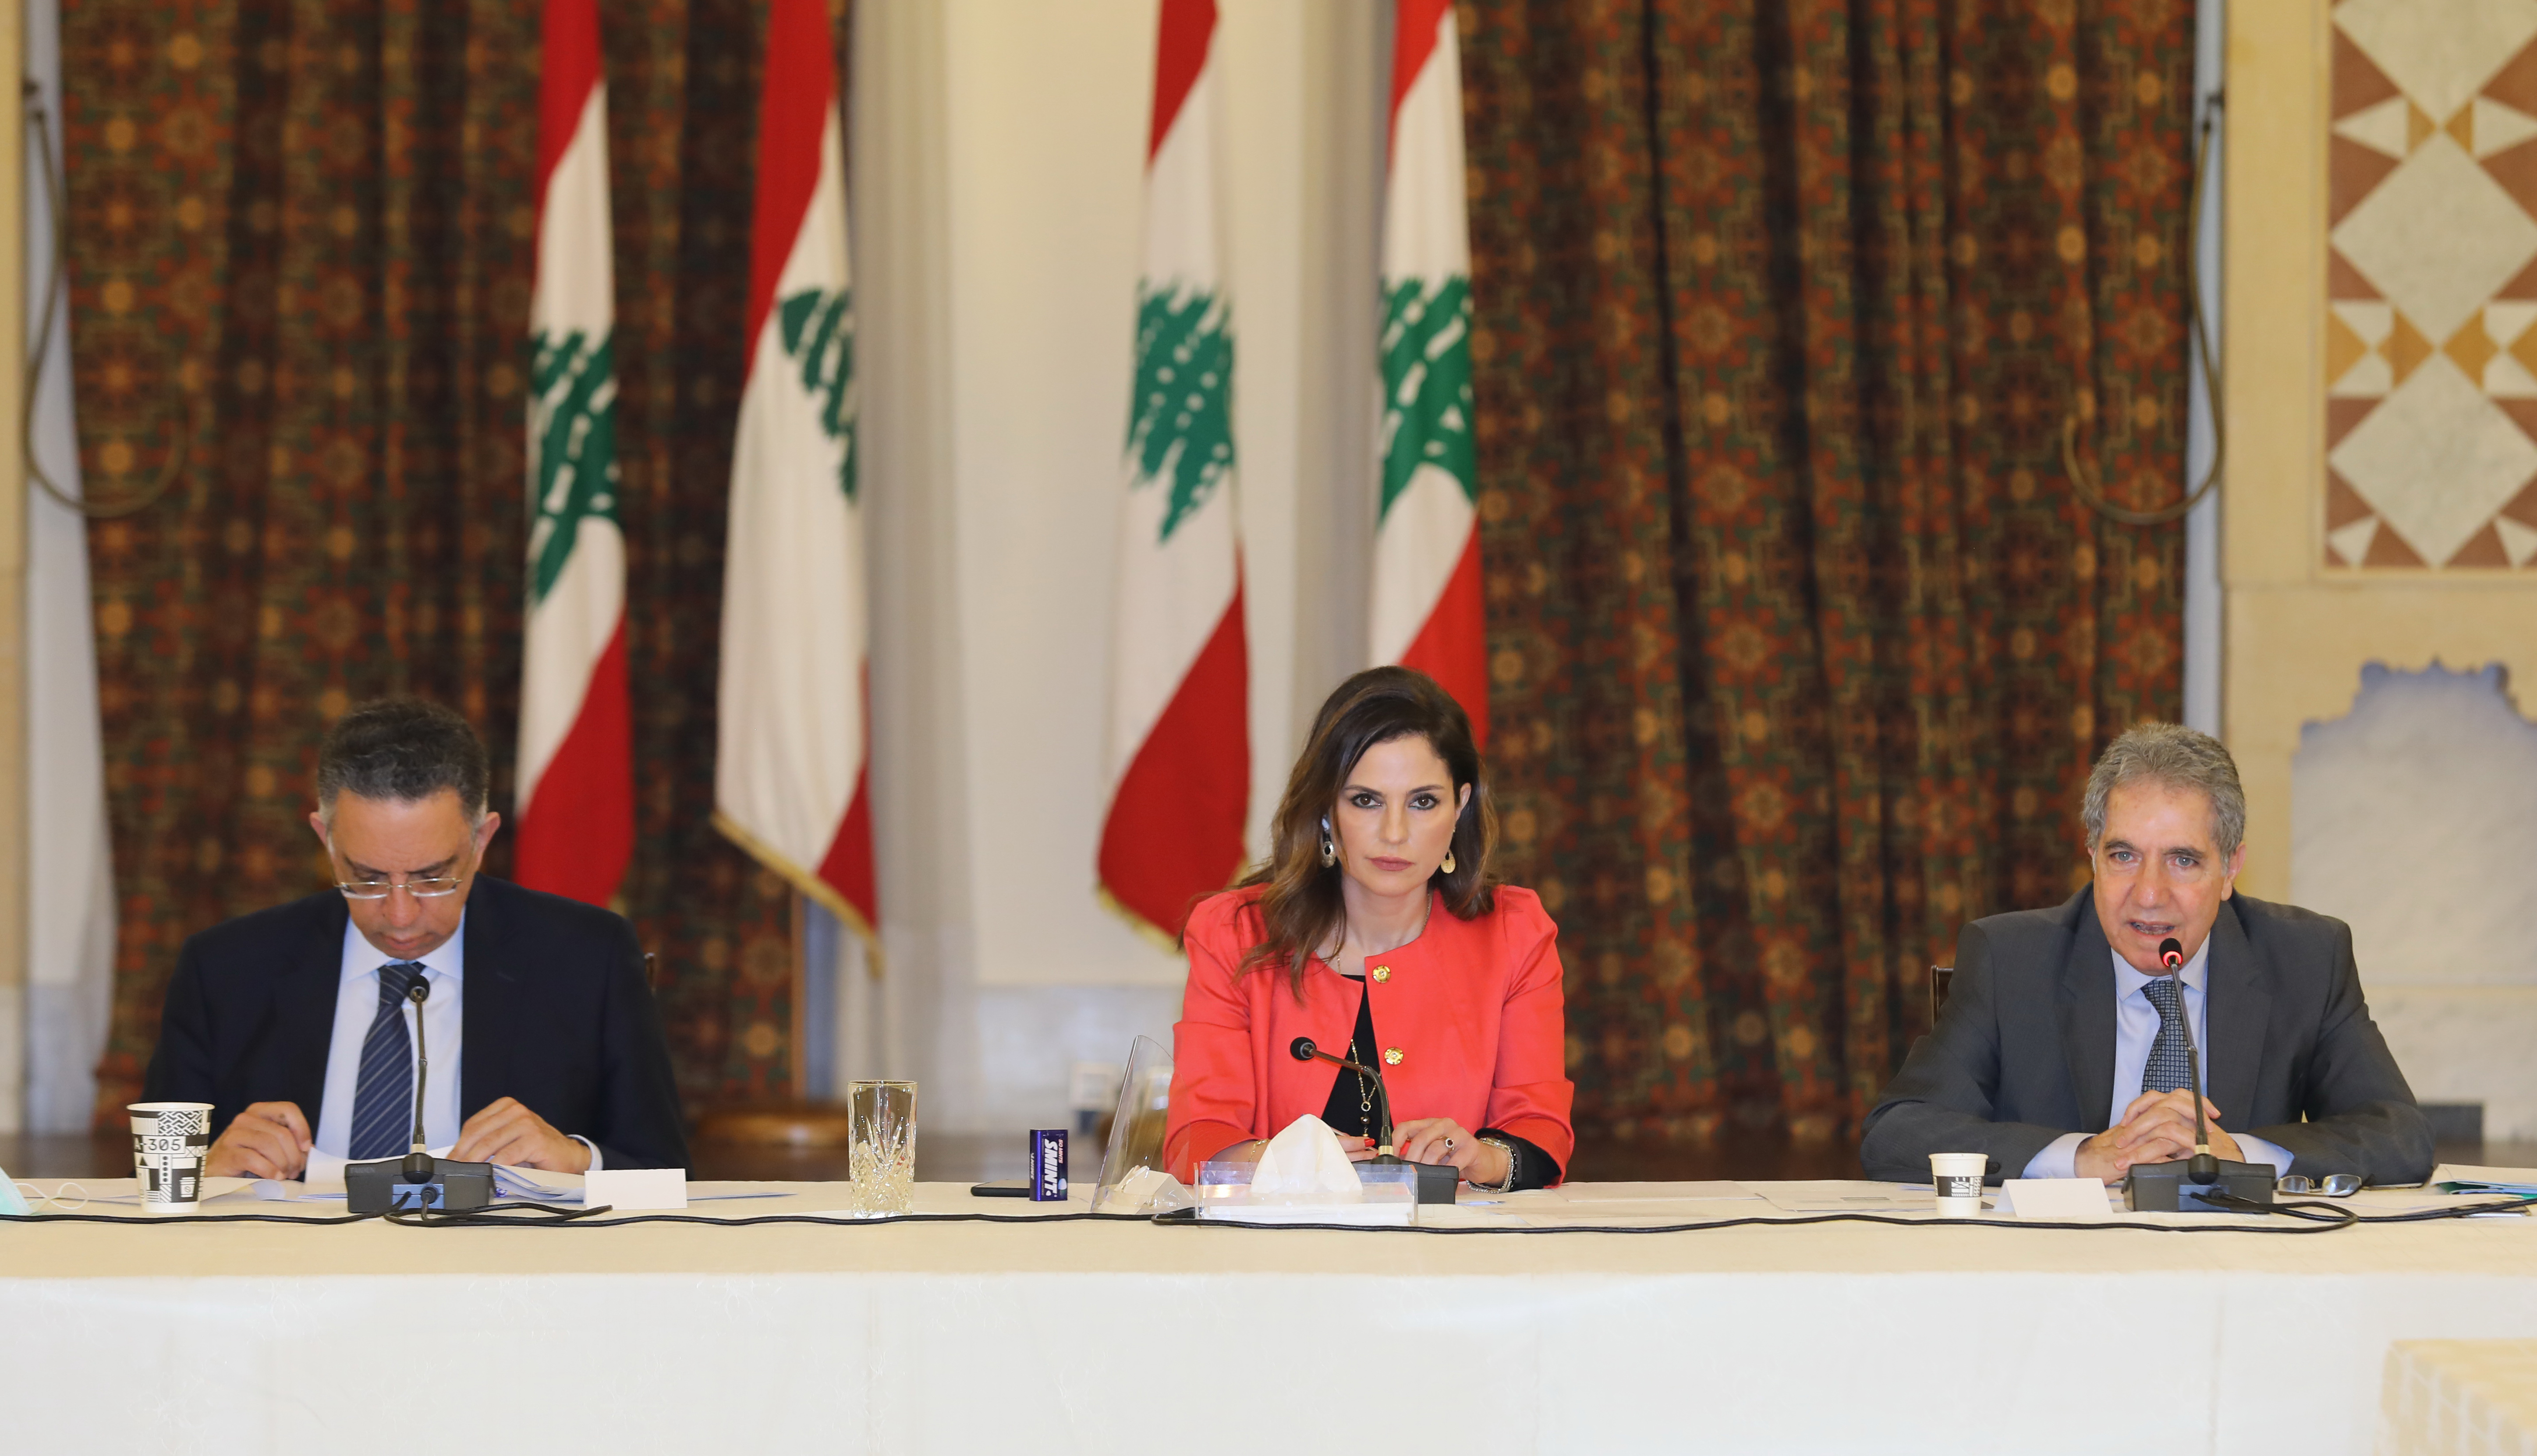 Minister Manal Abdel Samad Attends a Economical Conference at the Grand Serail